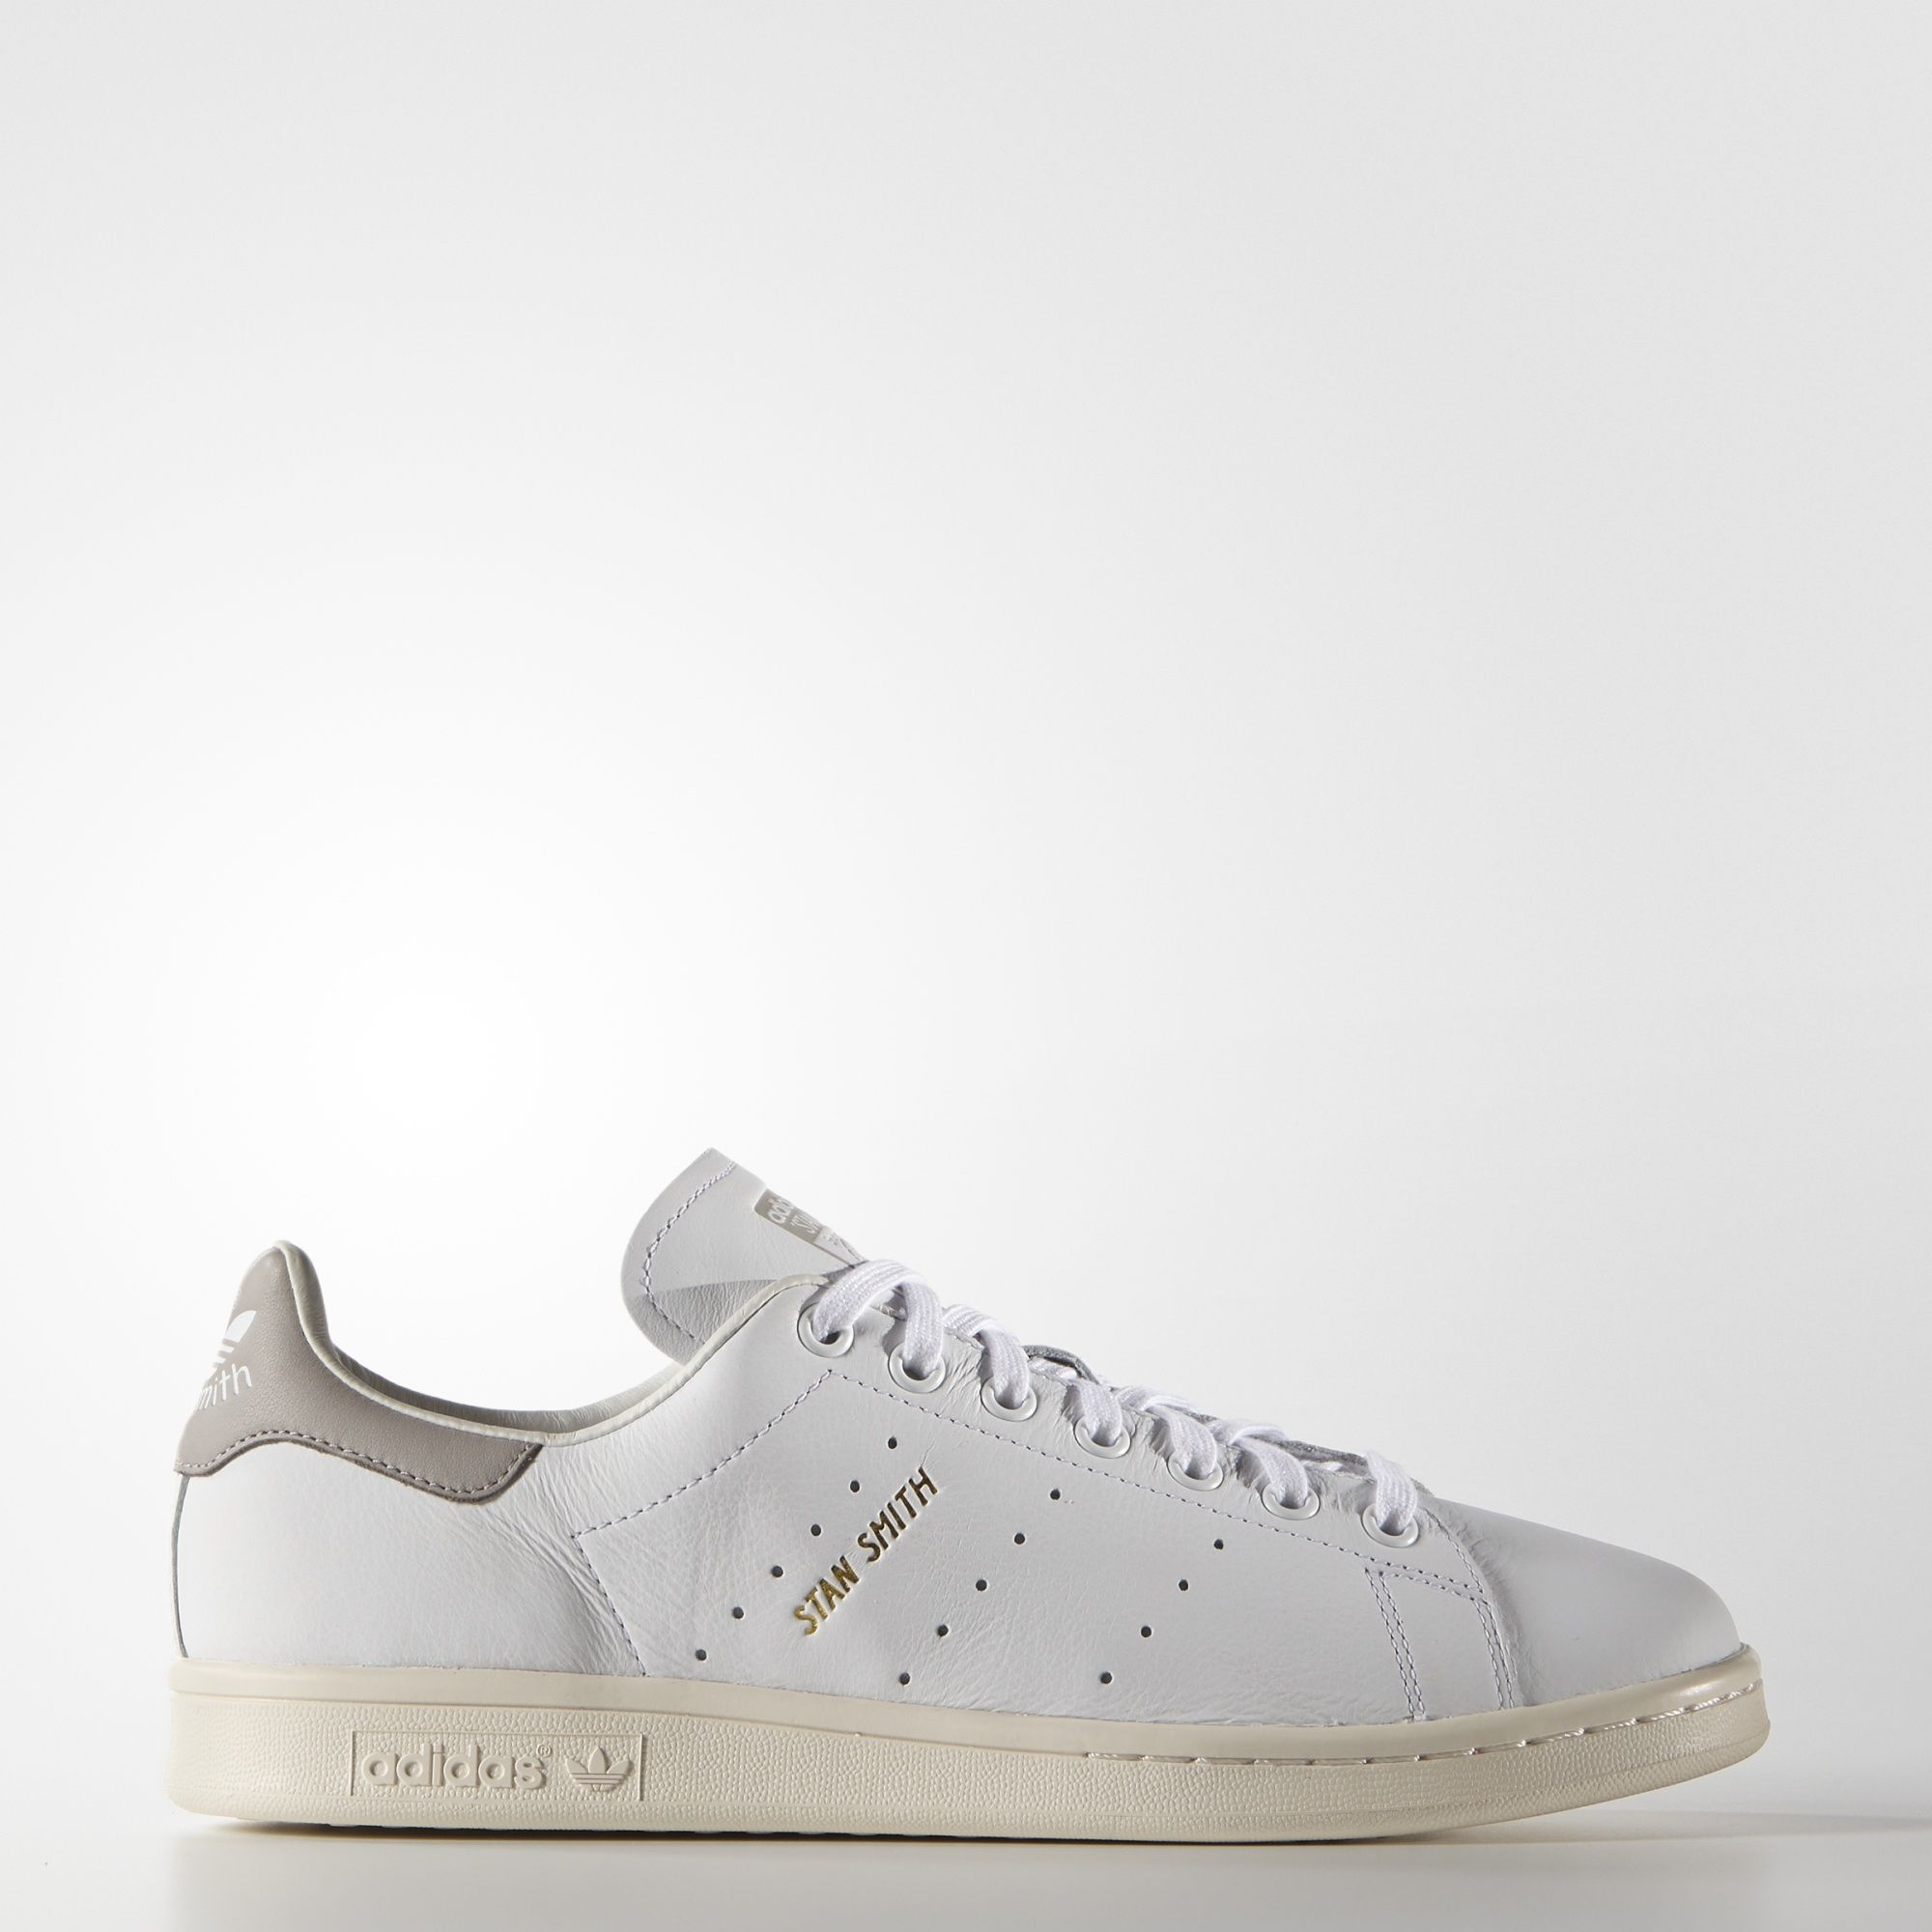 Nuovo Uomo Scarpe Trainers Sneakers ADIDAS ORIGINALS STAN SMITH SHOES S75075